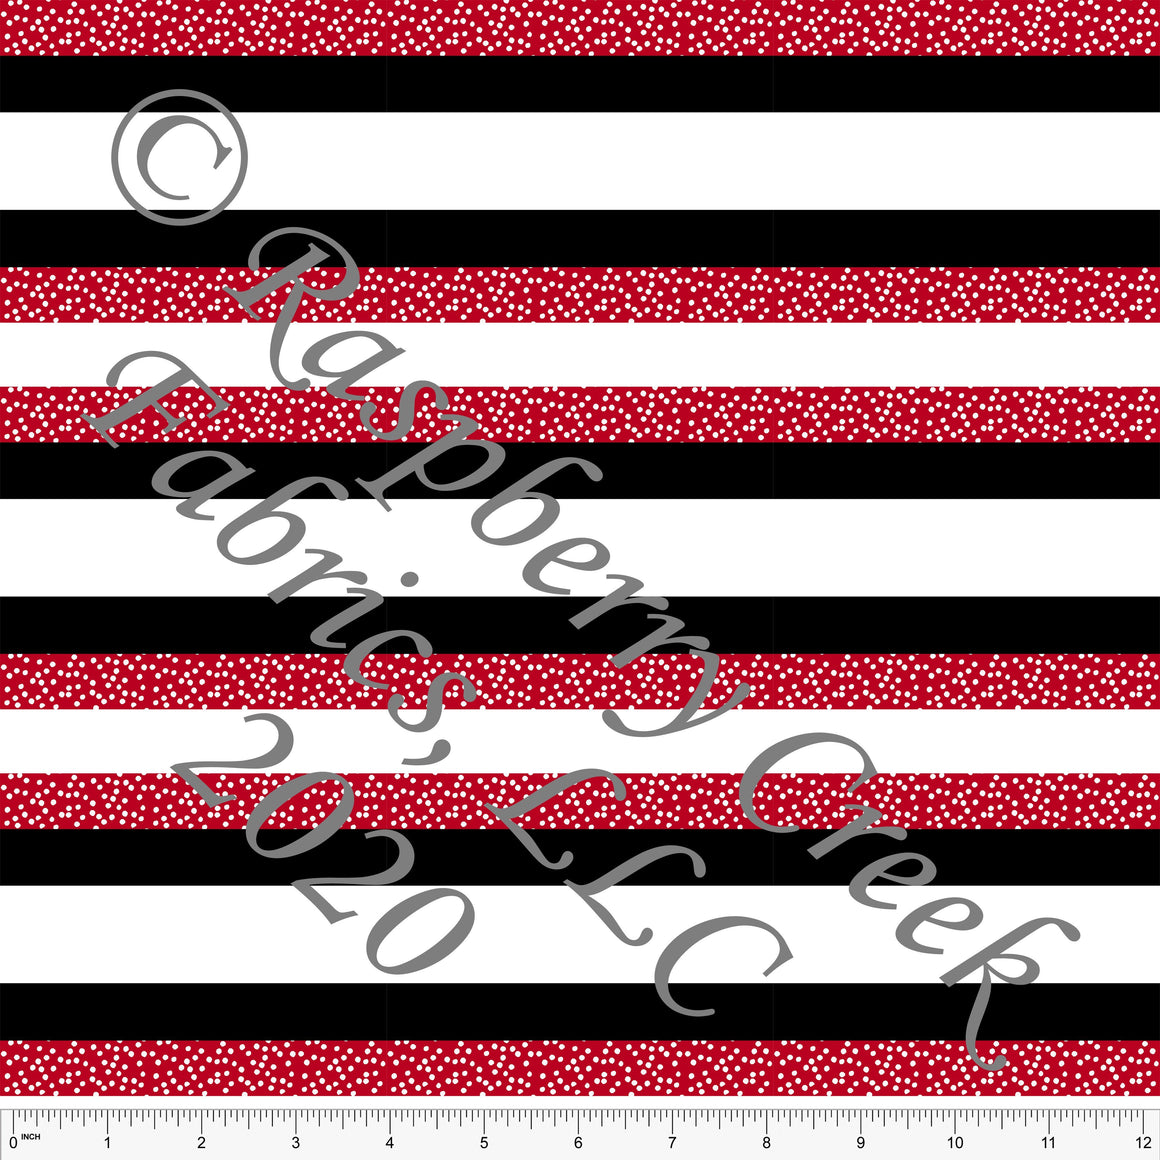 Red Black and White Polka Dot Multi Stripe Print Double Brushed Poly Knit Fabric, By Elise Peterson for CLUB Fabrics - Raspberry Creek Fabrics